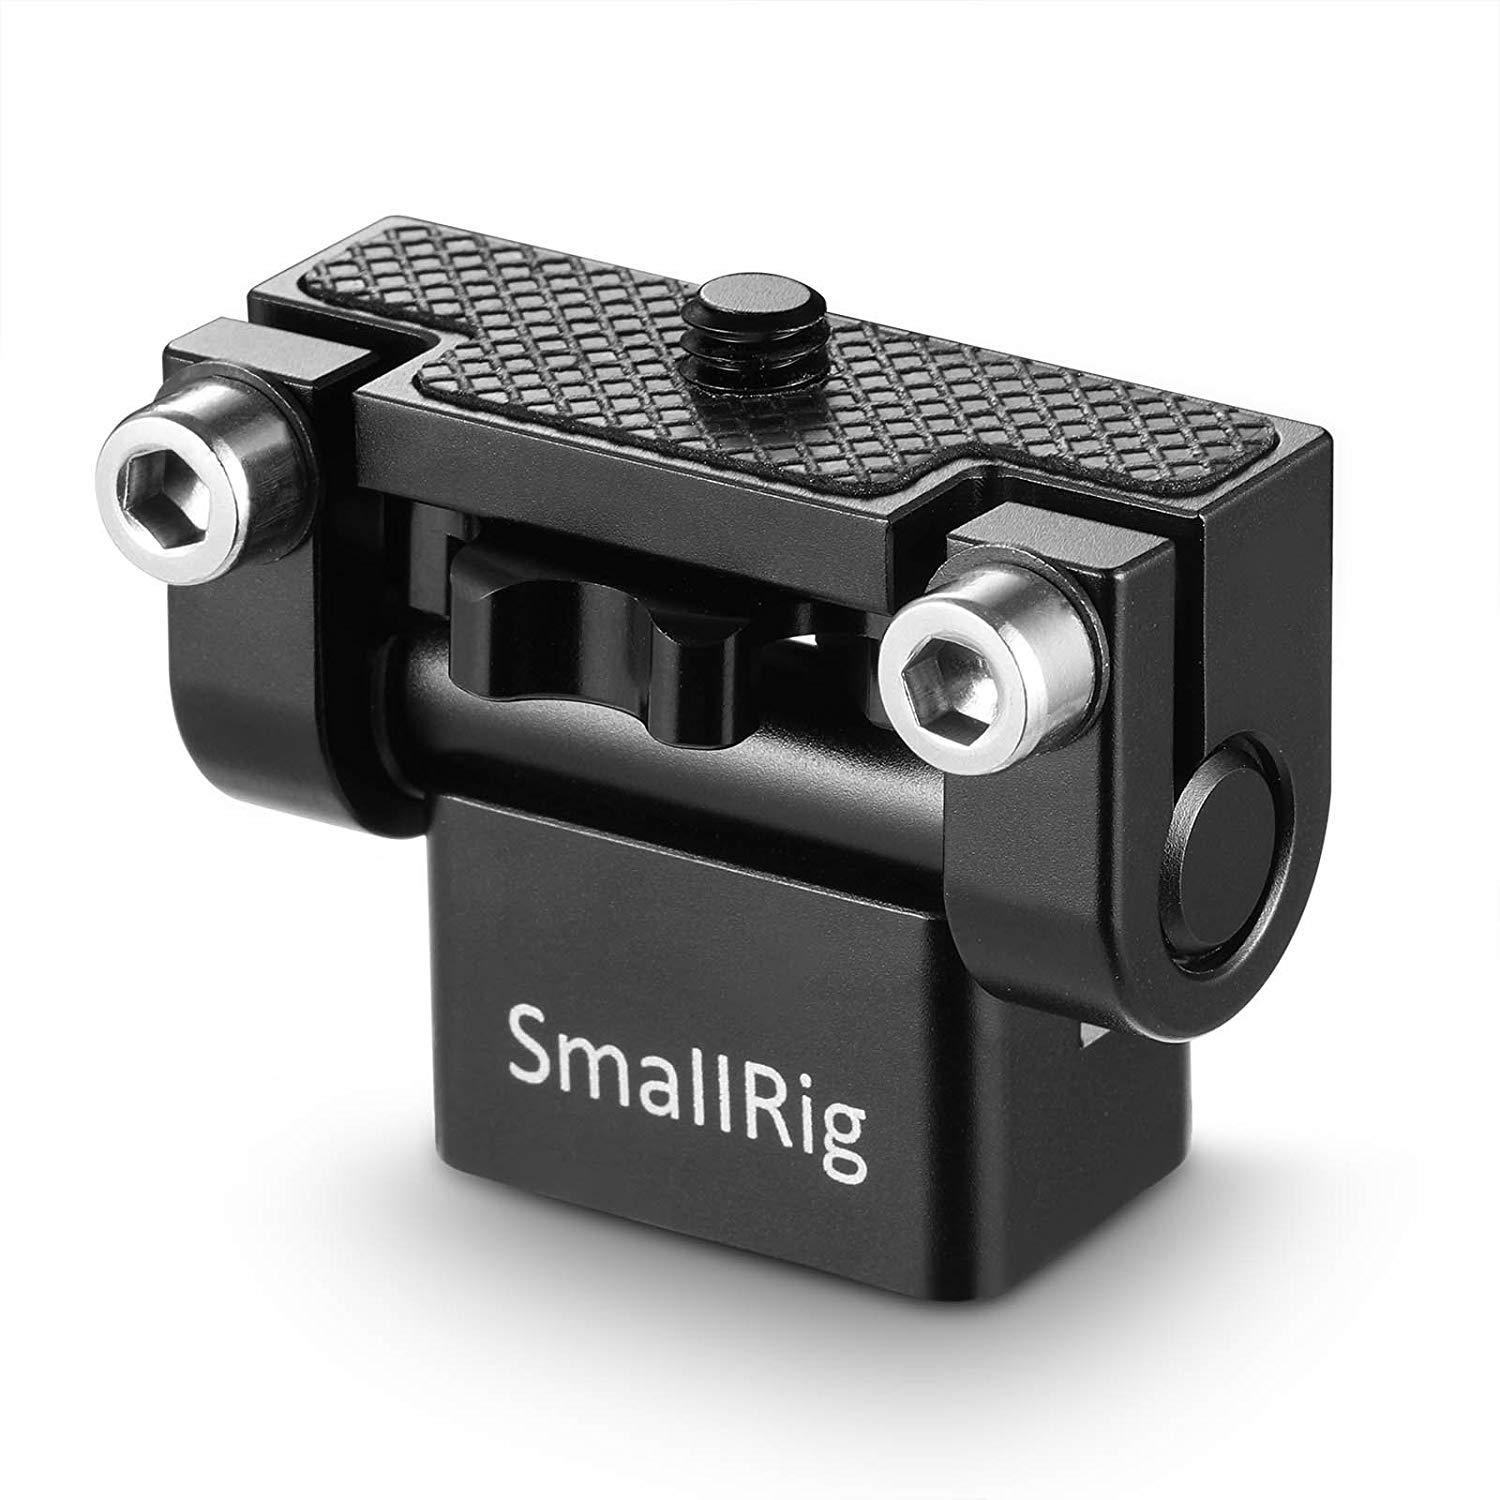 SmallRig Tooless Pan Monitor Holder Mount Arm Anti-Twist for Camera Field Monitors, Friction Up to 180° - 1842